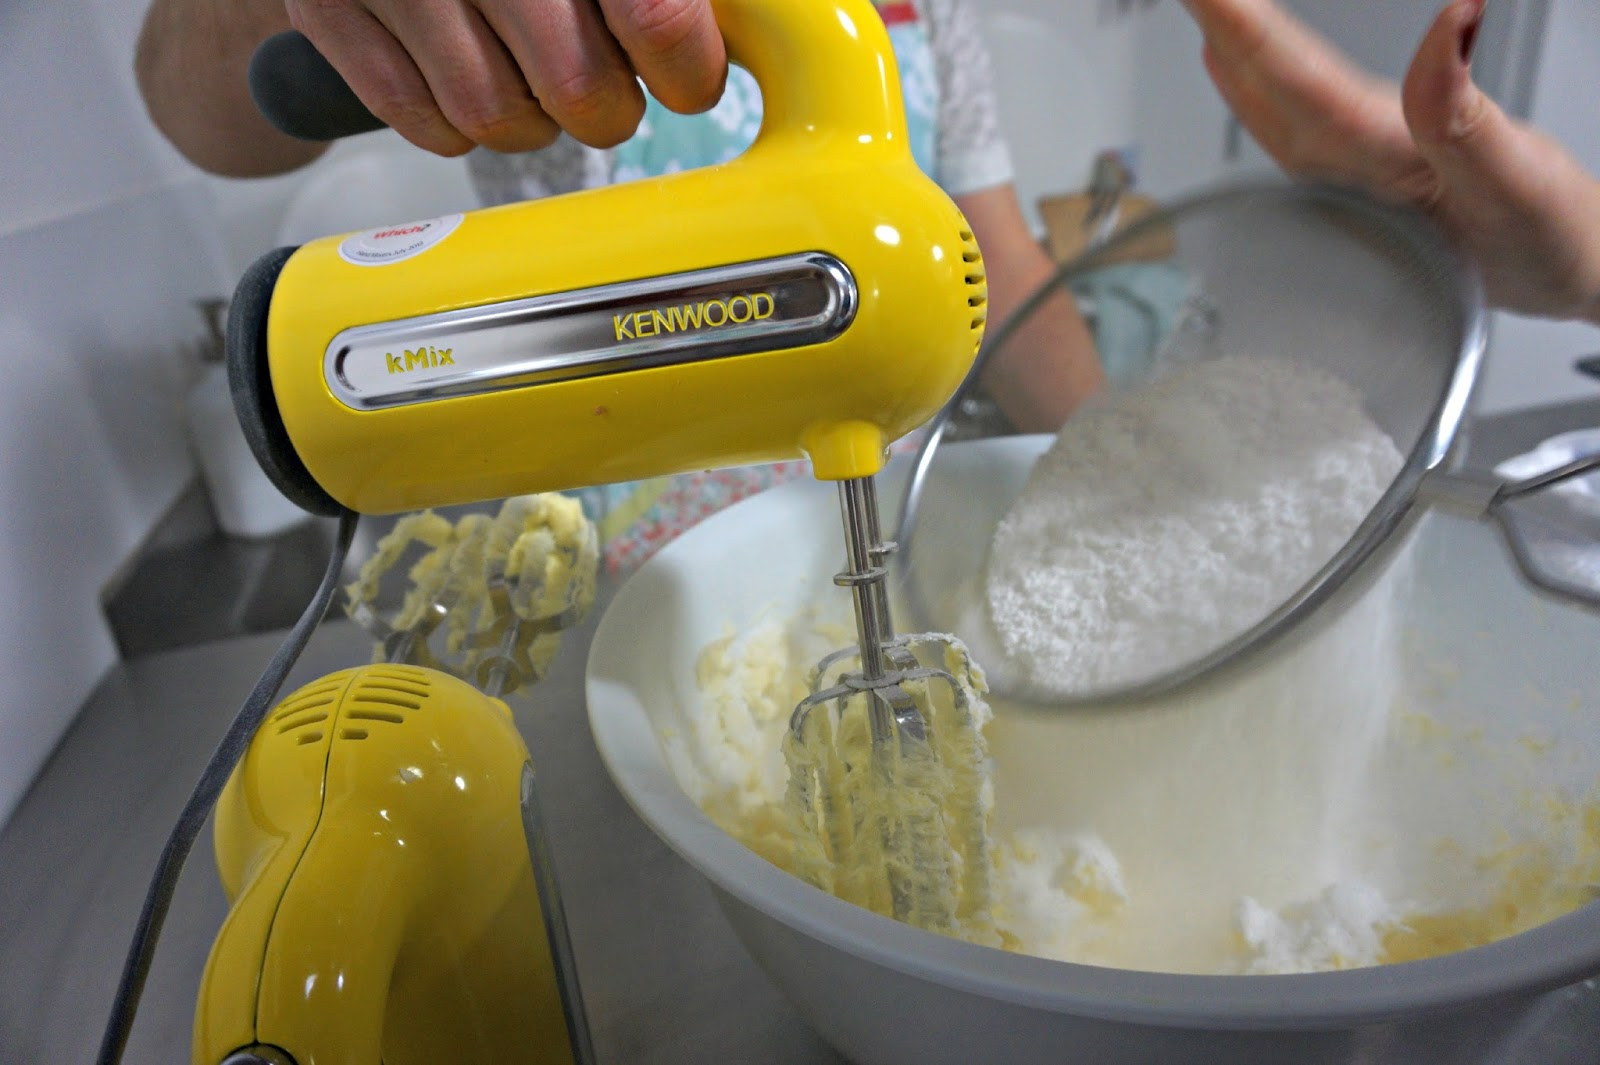 icing being made for a cake